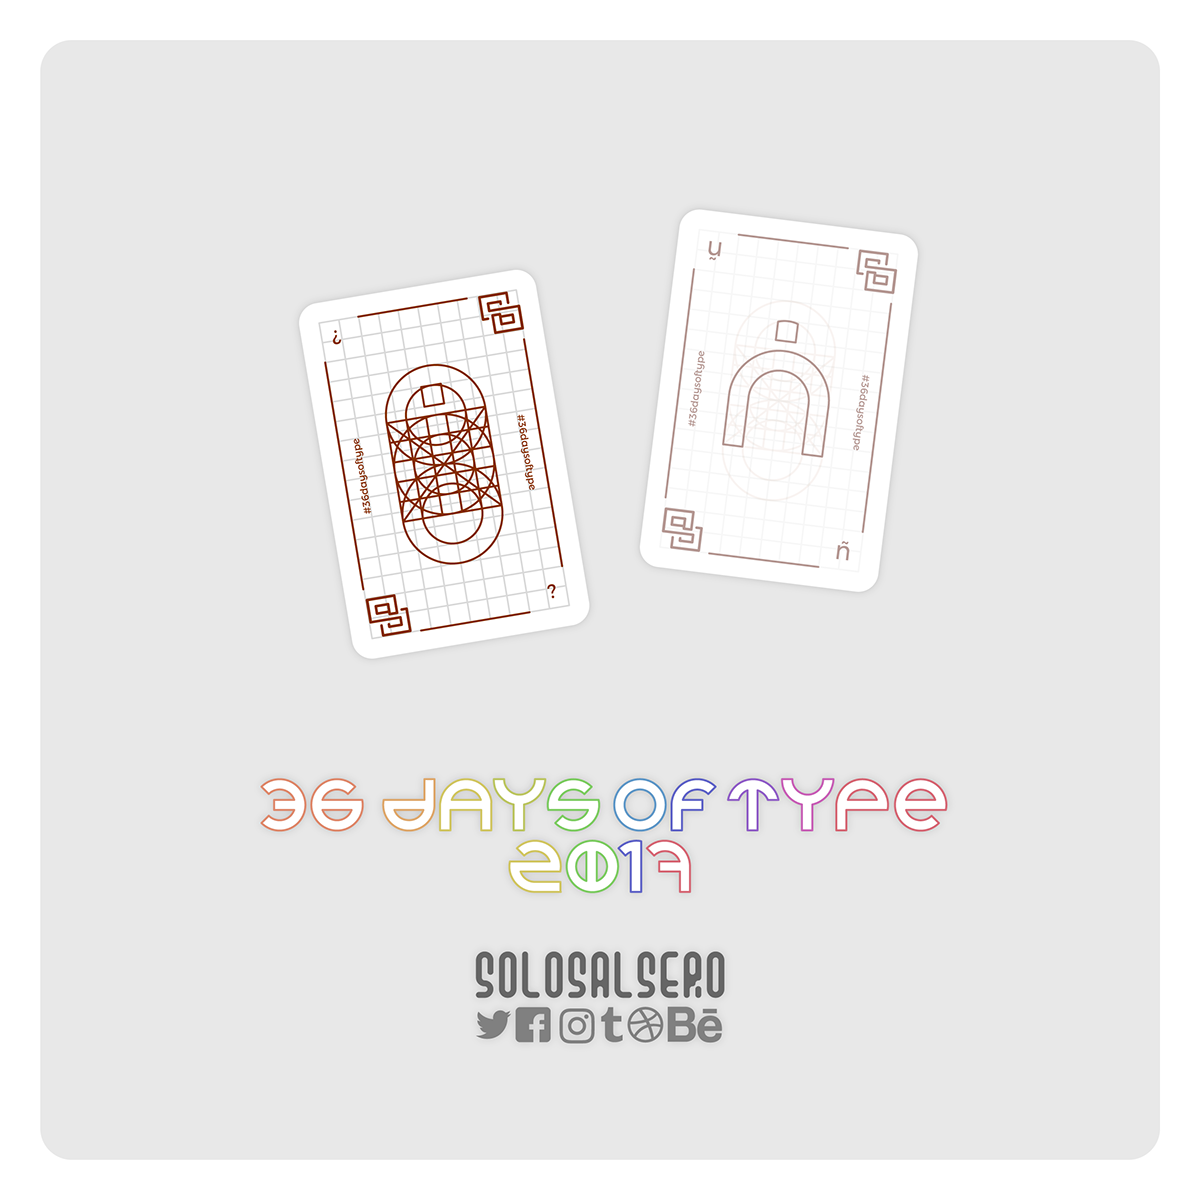 solosalsero cartas Playing Cards letras letters números numbers tipografia typo typography